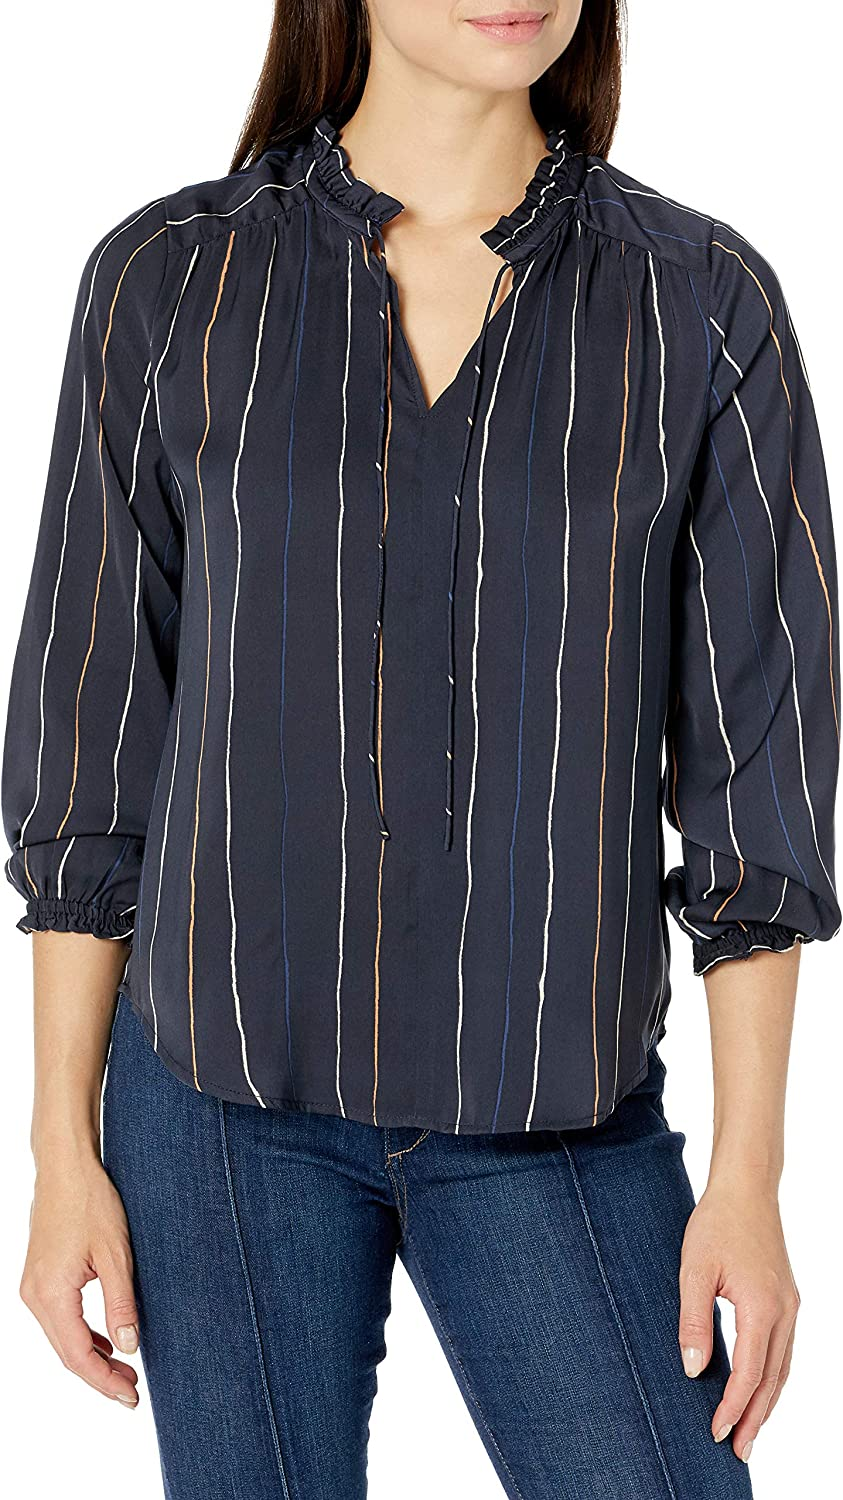 NIC+ZOE Women's Waterfall Super popular specialty store Clearance SALE Limited time Blouse